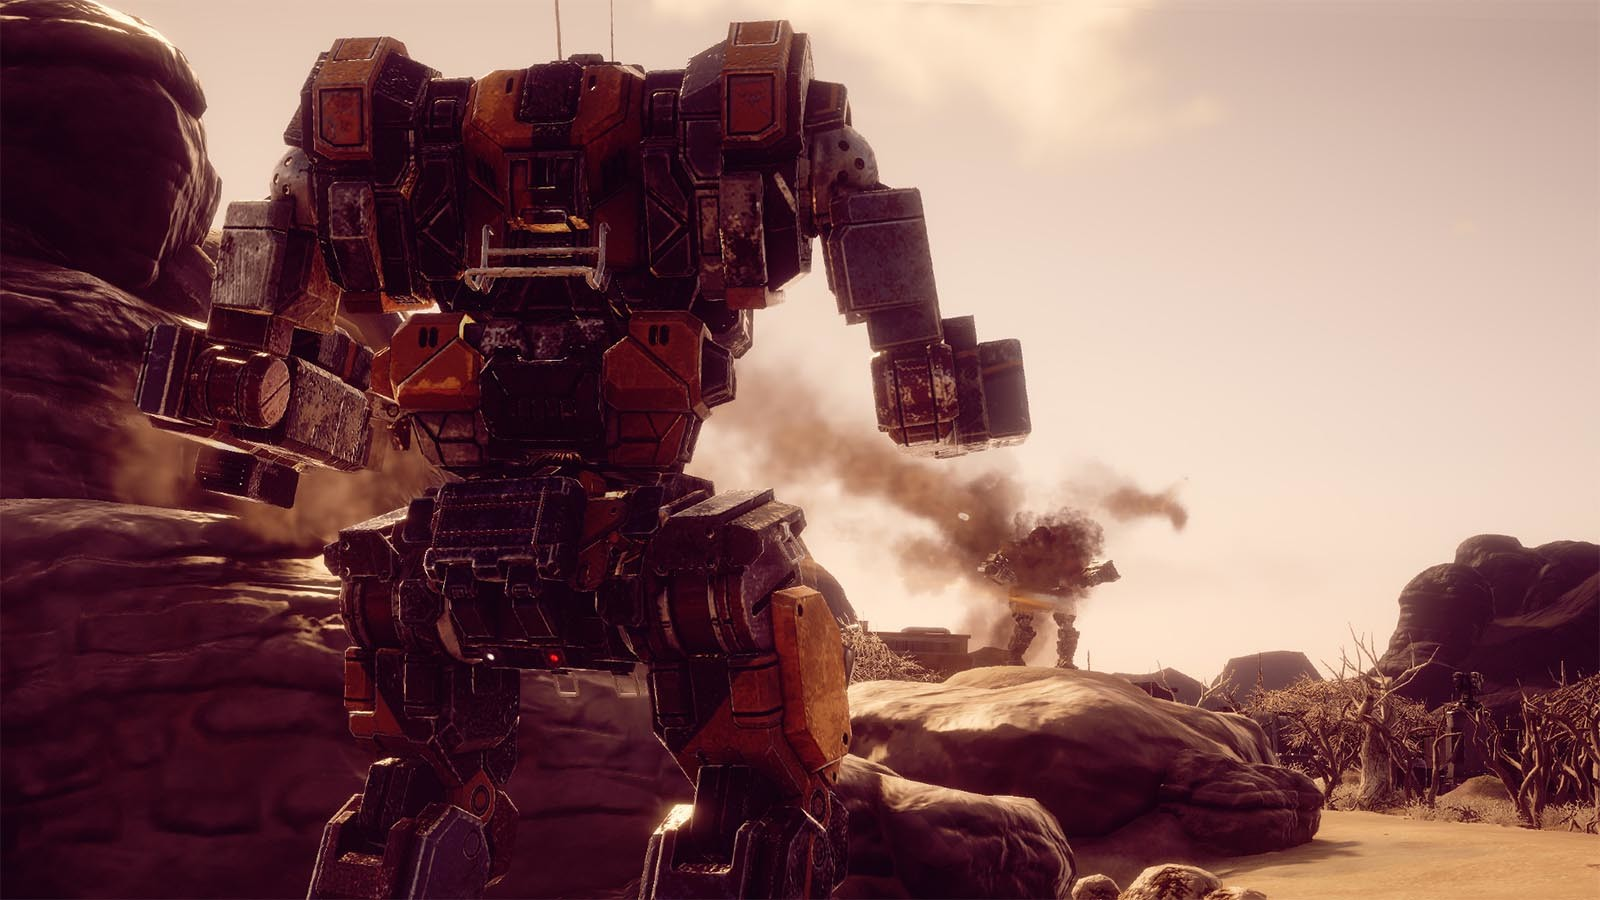 BATTLETECH - Digital Deluxe Edition [Steam CD Key] for PC, Mac and Linux -  Buy now